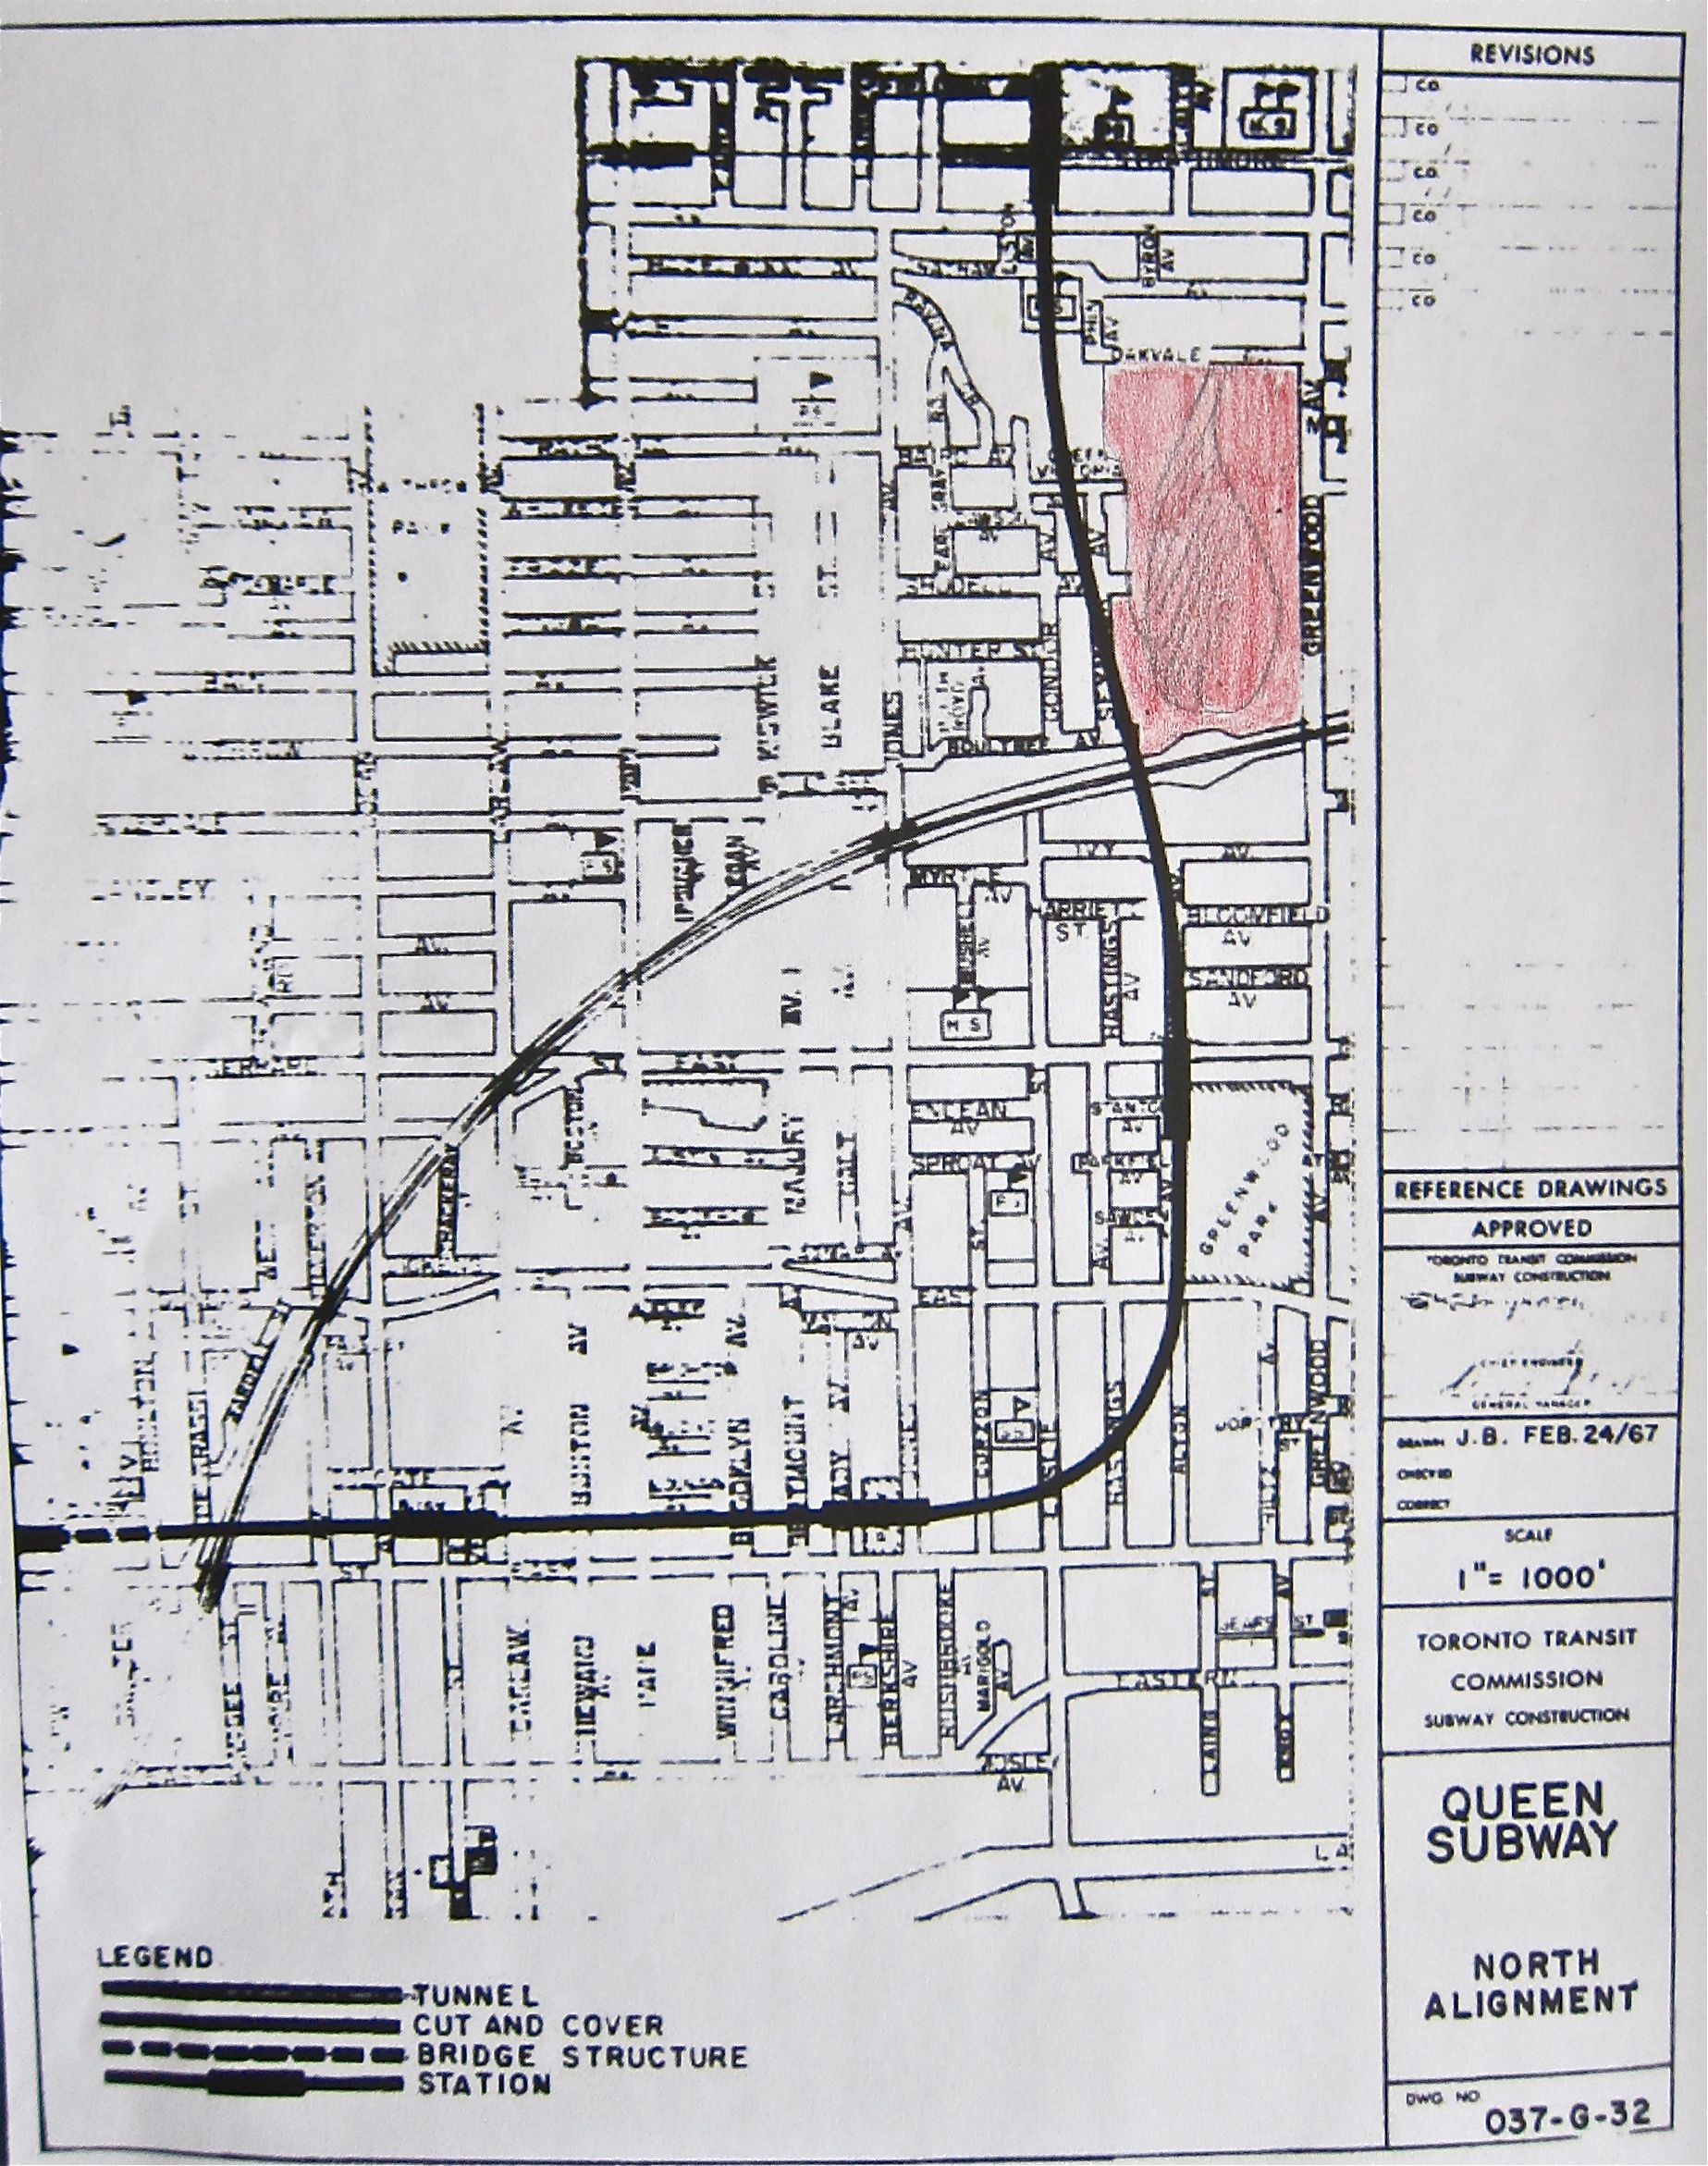 That 1968 DRL plan was slated to connect with the west side of the Greenwood yard (TTC still owns the real estate) and connect with the Bloor-Danforth at Donlands.